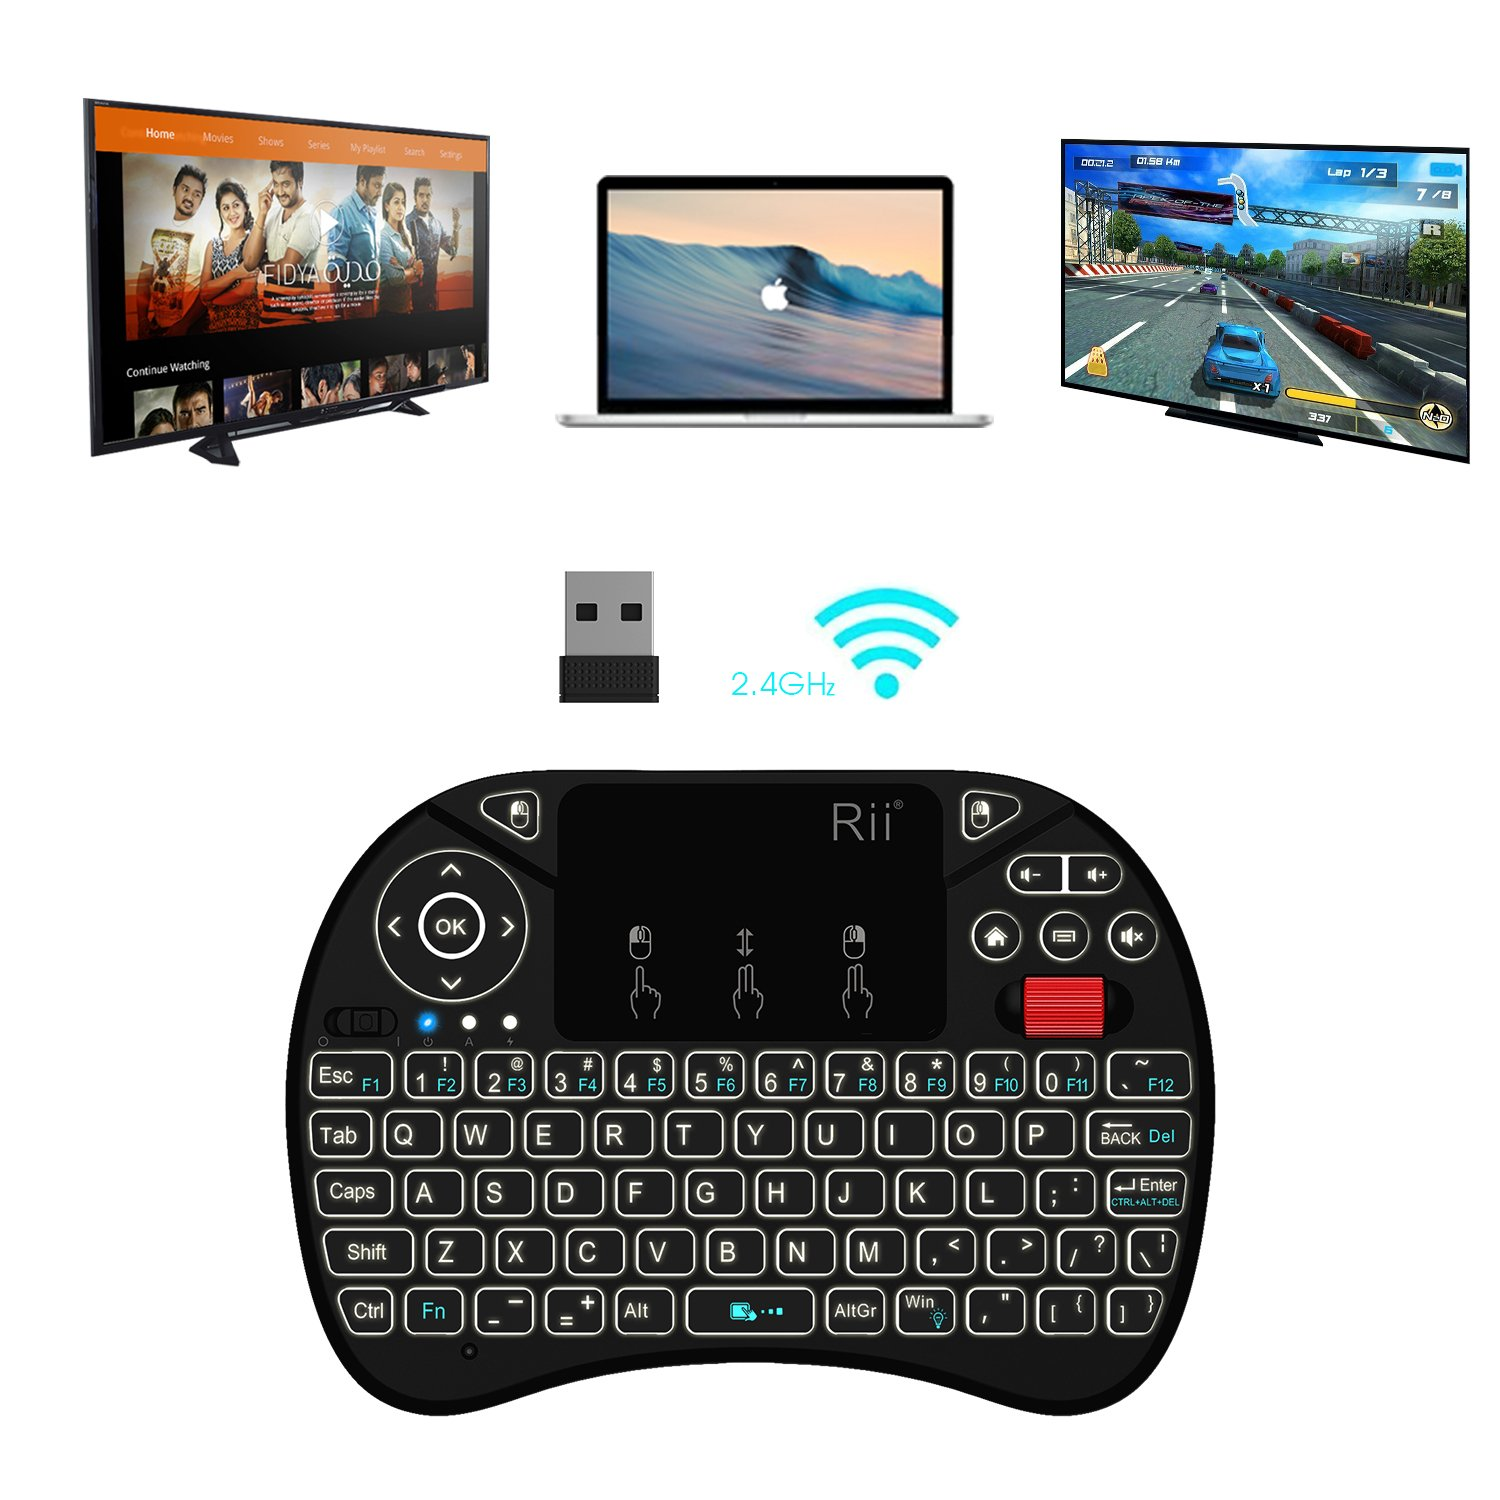 2018 Rii i8X 2.4GHz Mini Wireless Keyboard with Touchpad Mouse Combo, LED Backlit,Rechargeable Li-ion Battery-Black by Rii (Image #4)